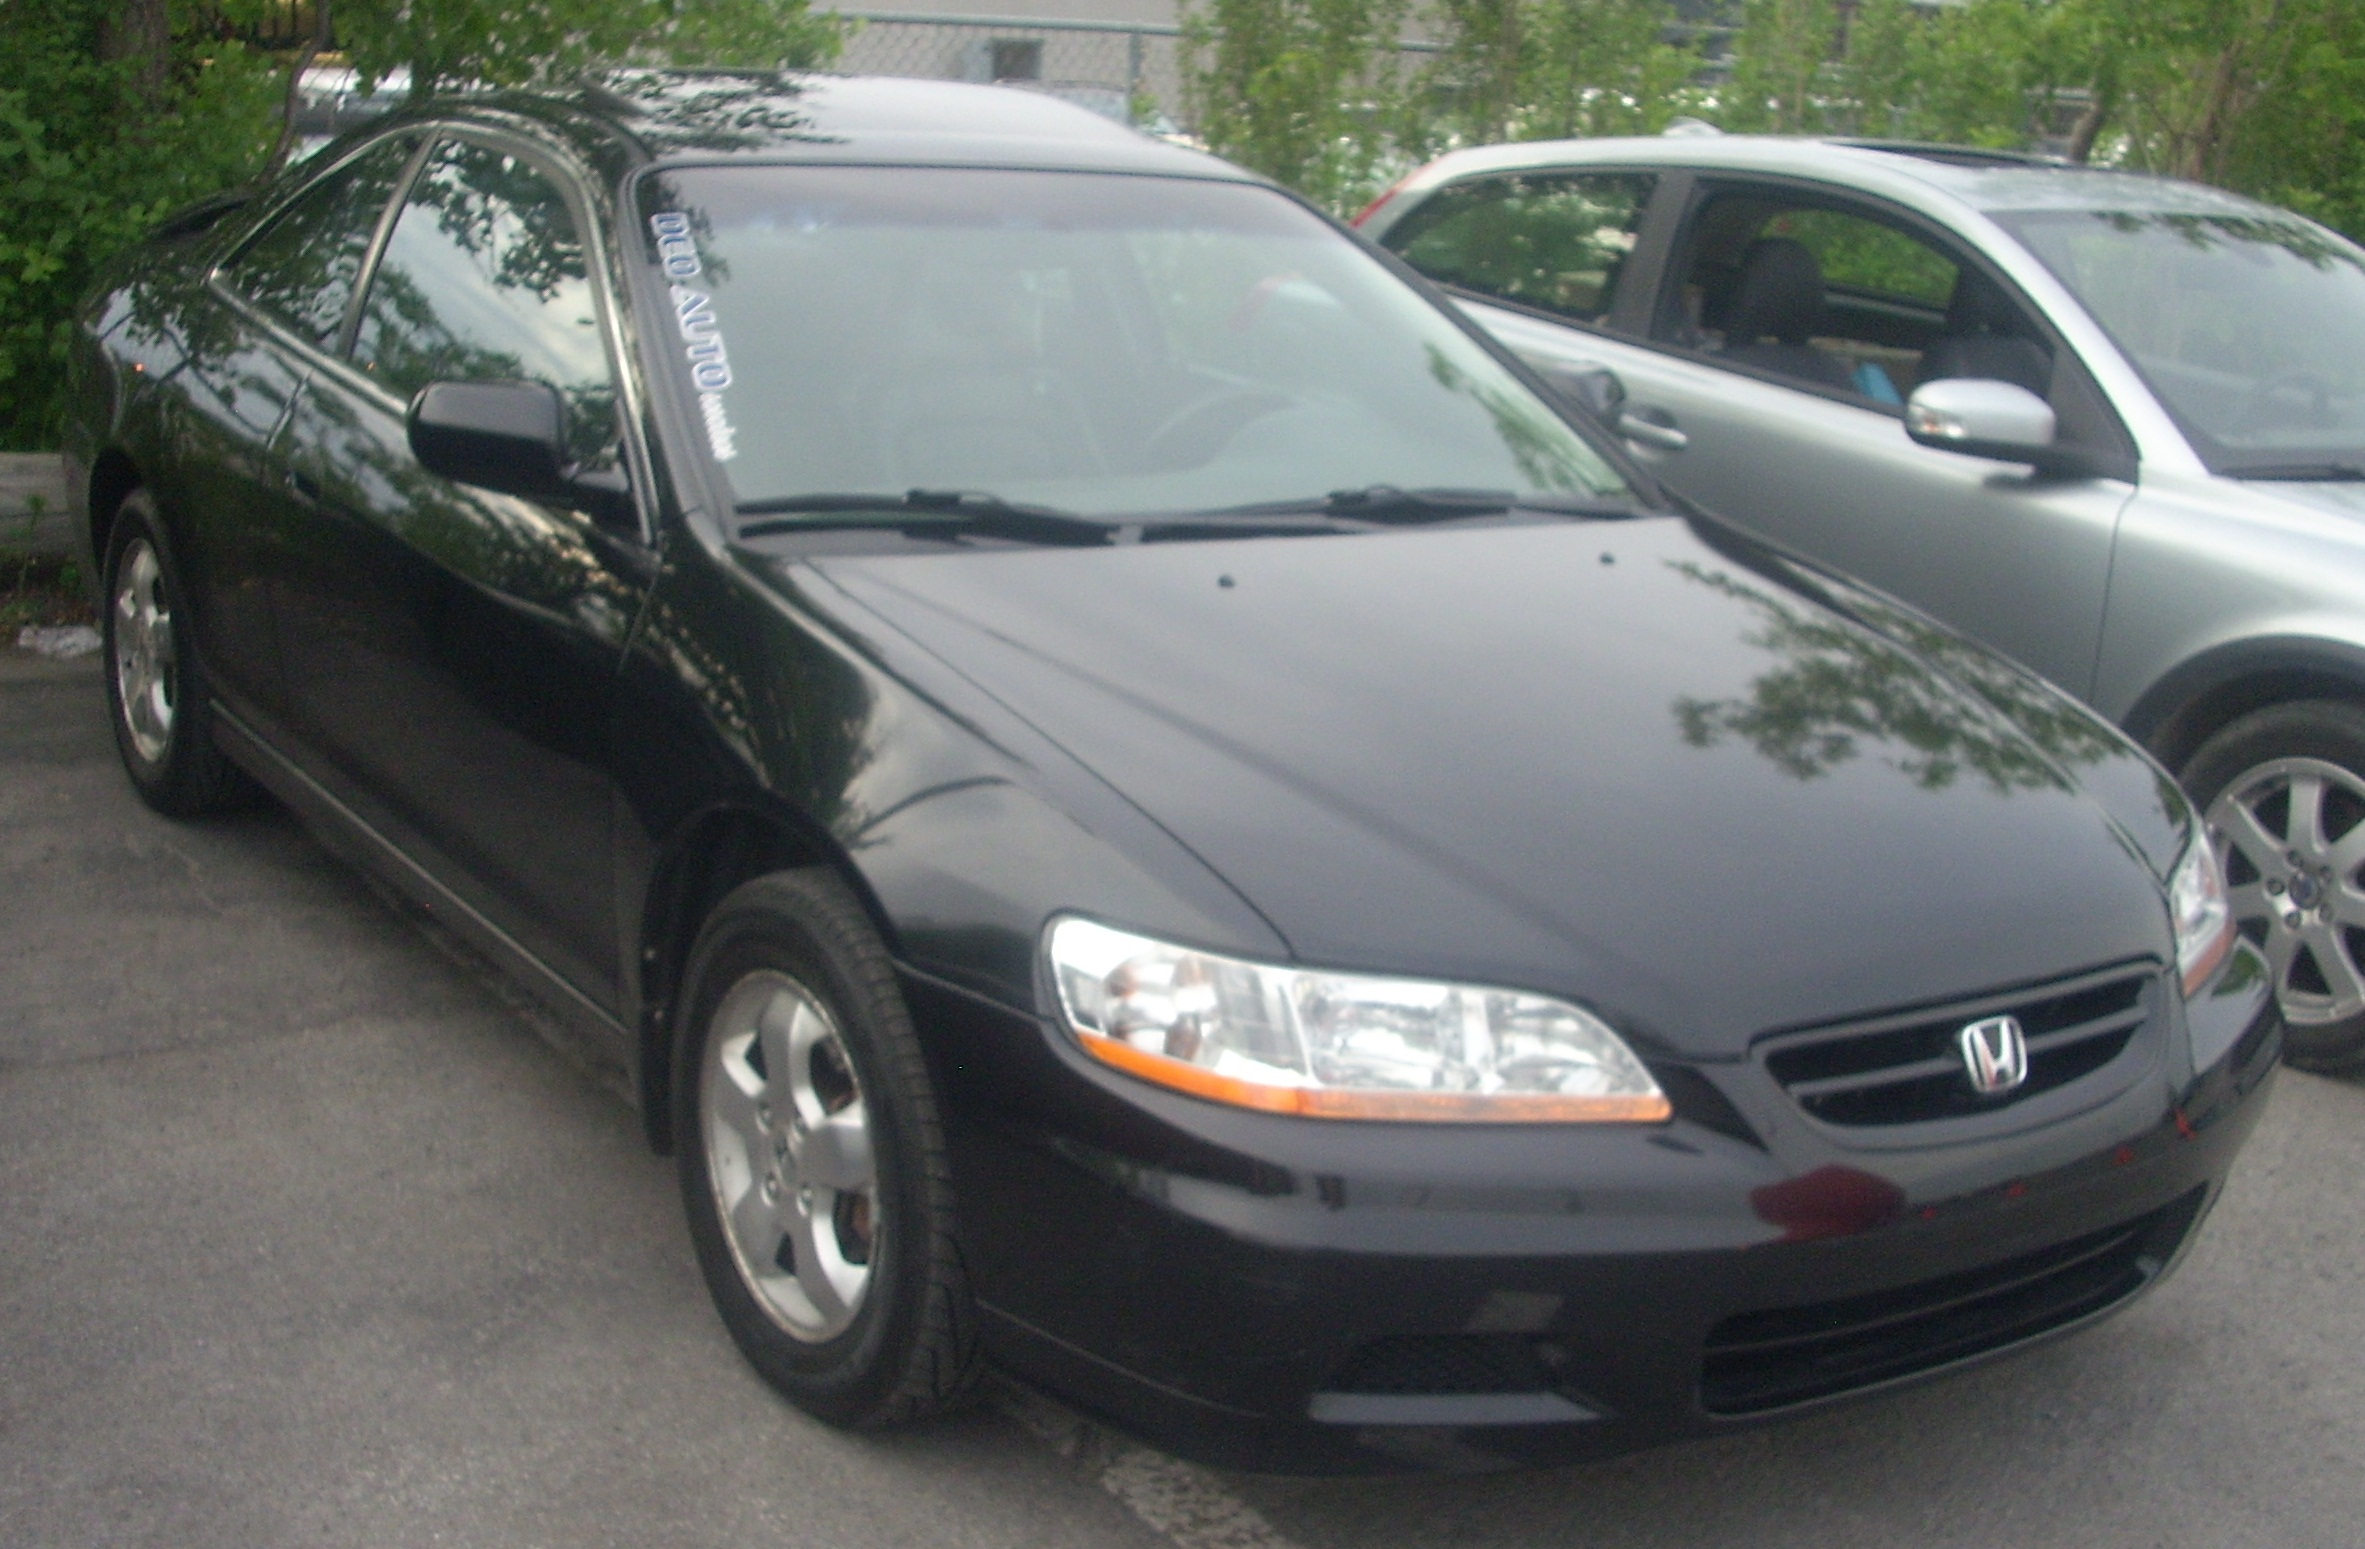 File:'01-'02 Honda Accord Coupe (Orange Julep '10).jpg - Wikimedia